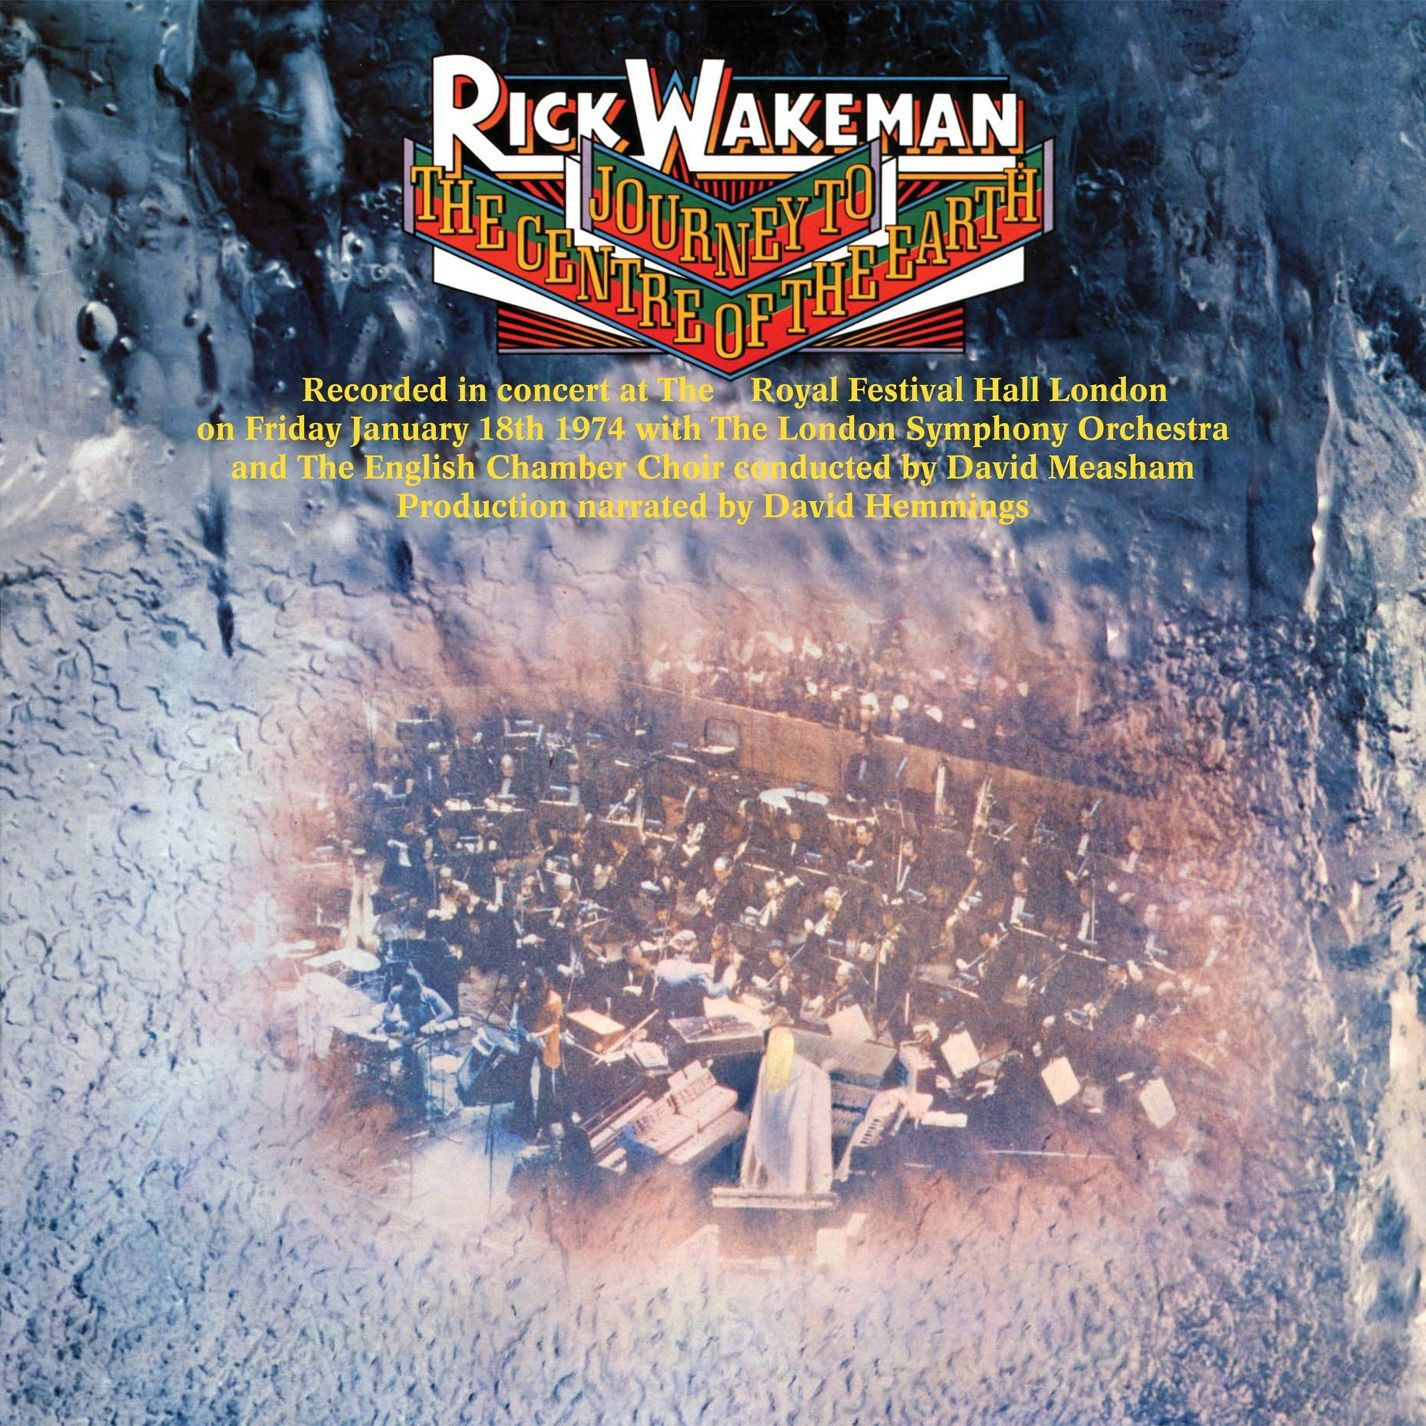 RICK WAKEMANN - JOURNEY TO THE CENTRE OF THE EARTH (CD)